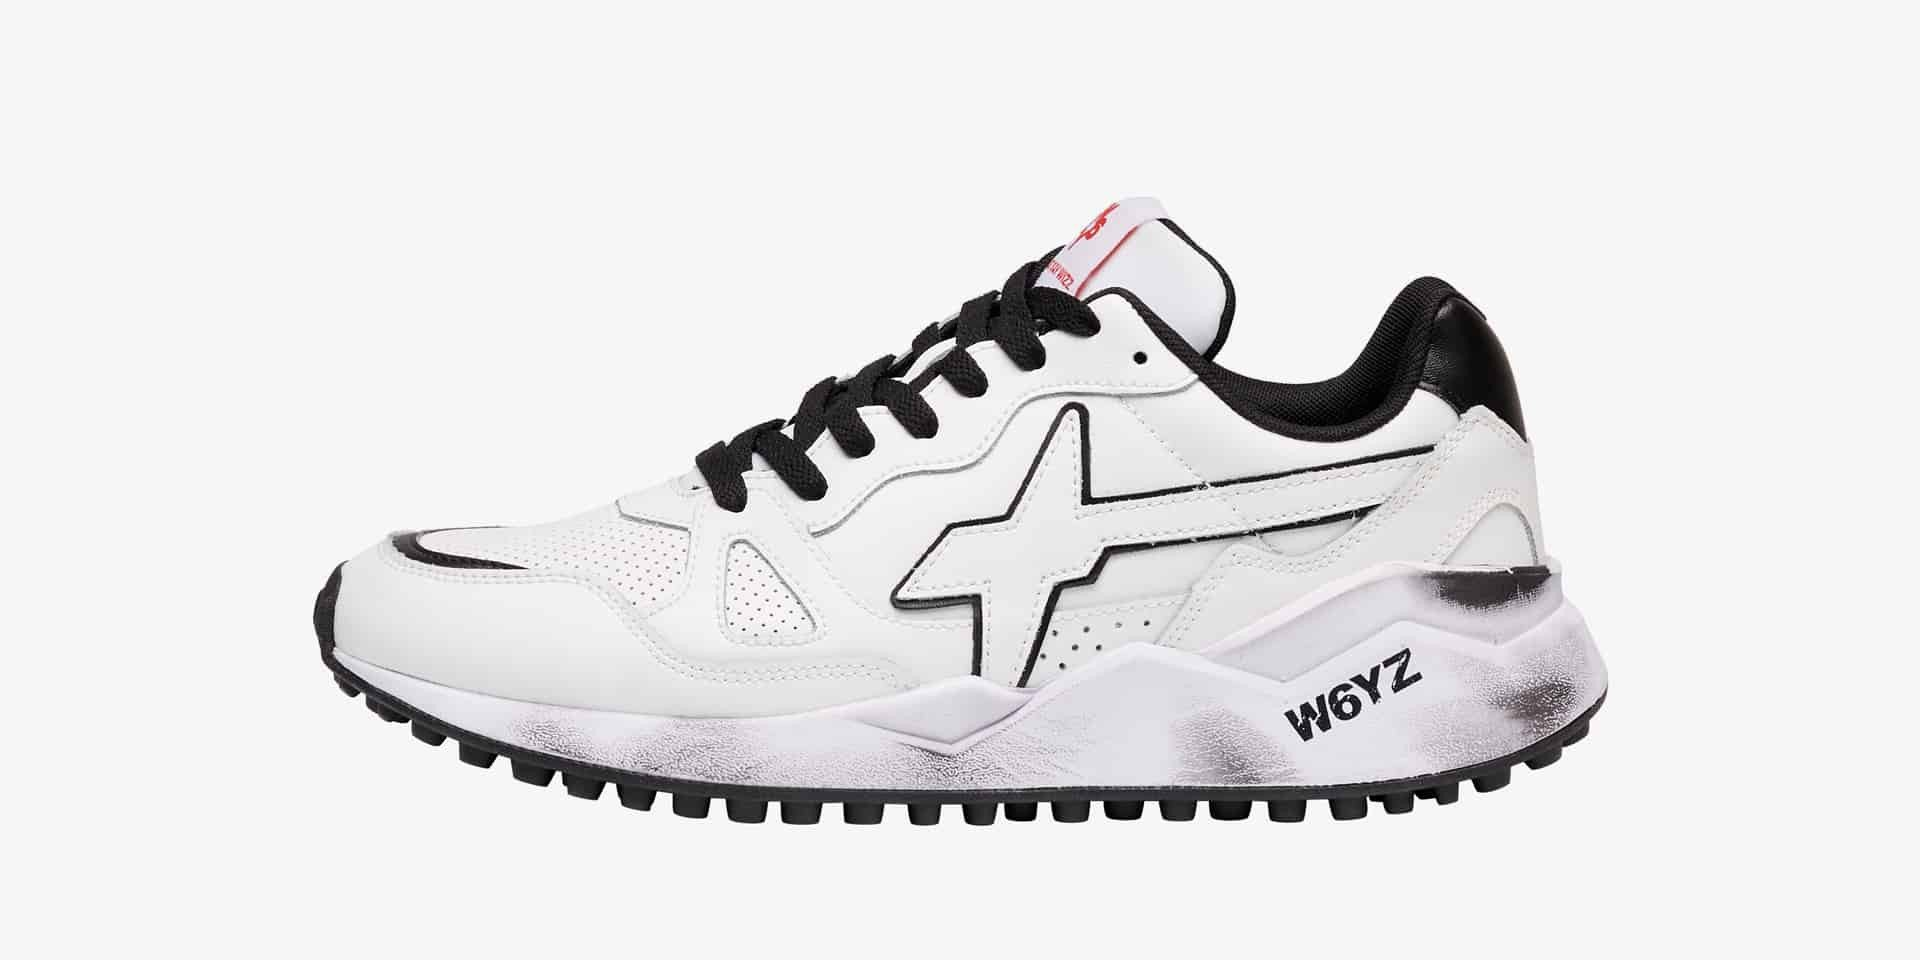 WOLF-M. - Dirty-soled brushed calfskin sneakers - White